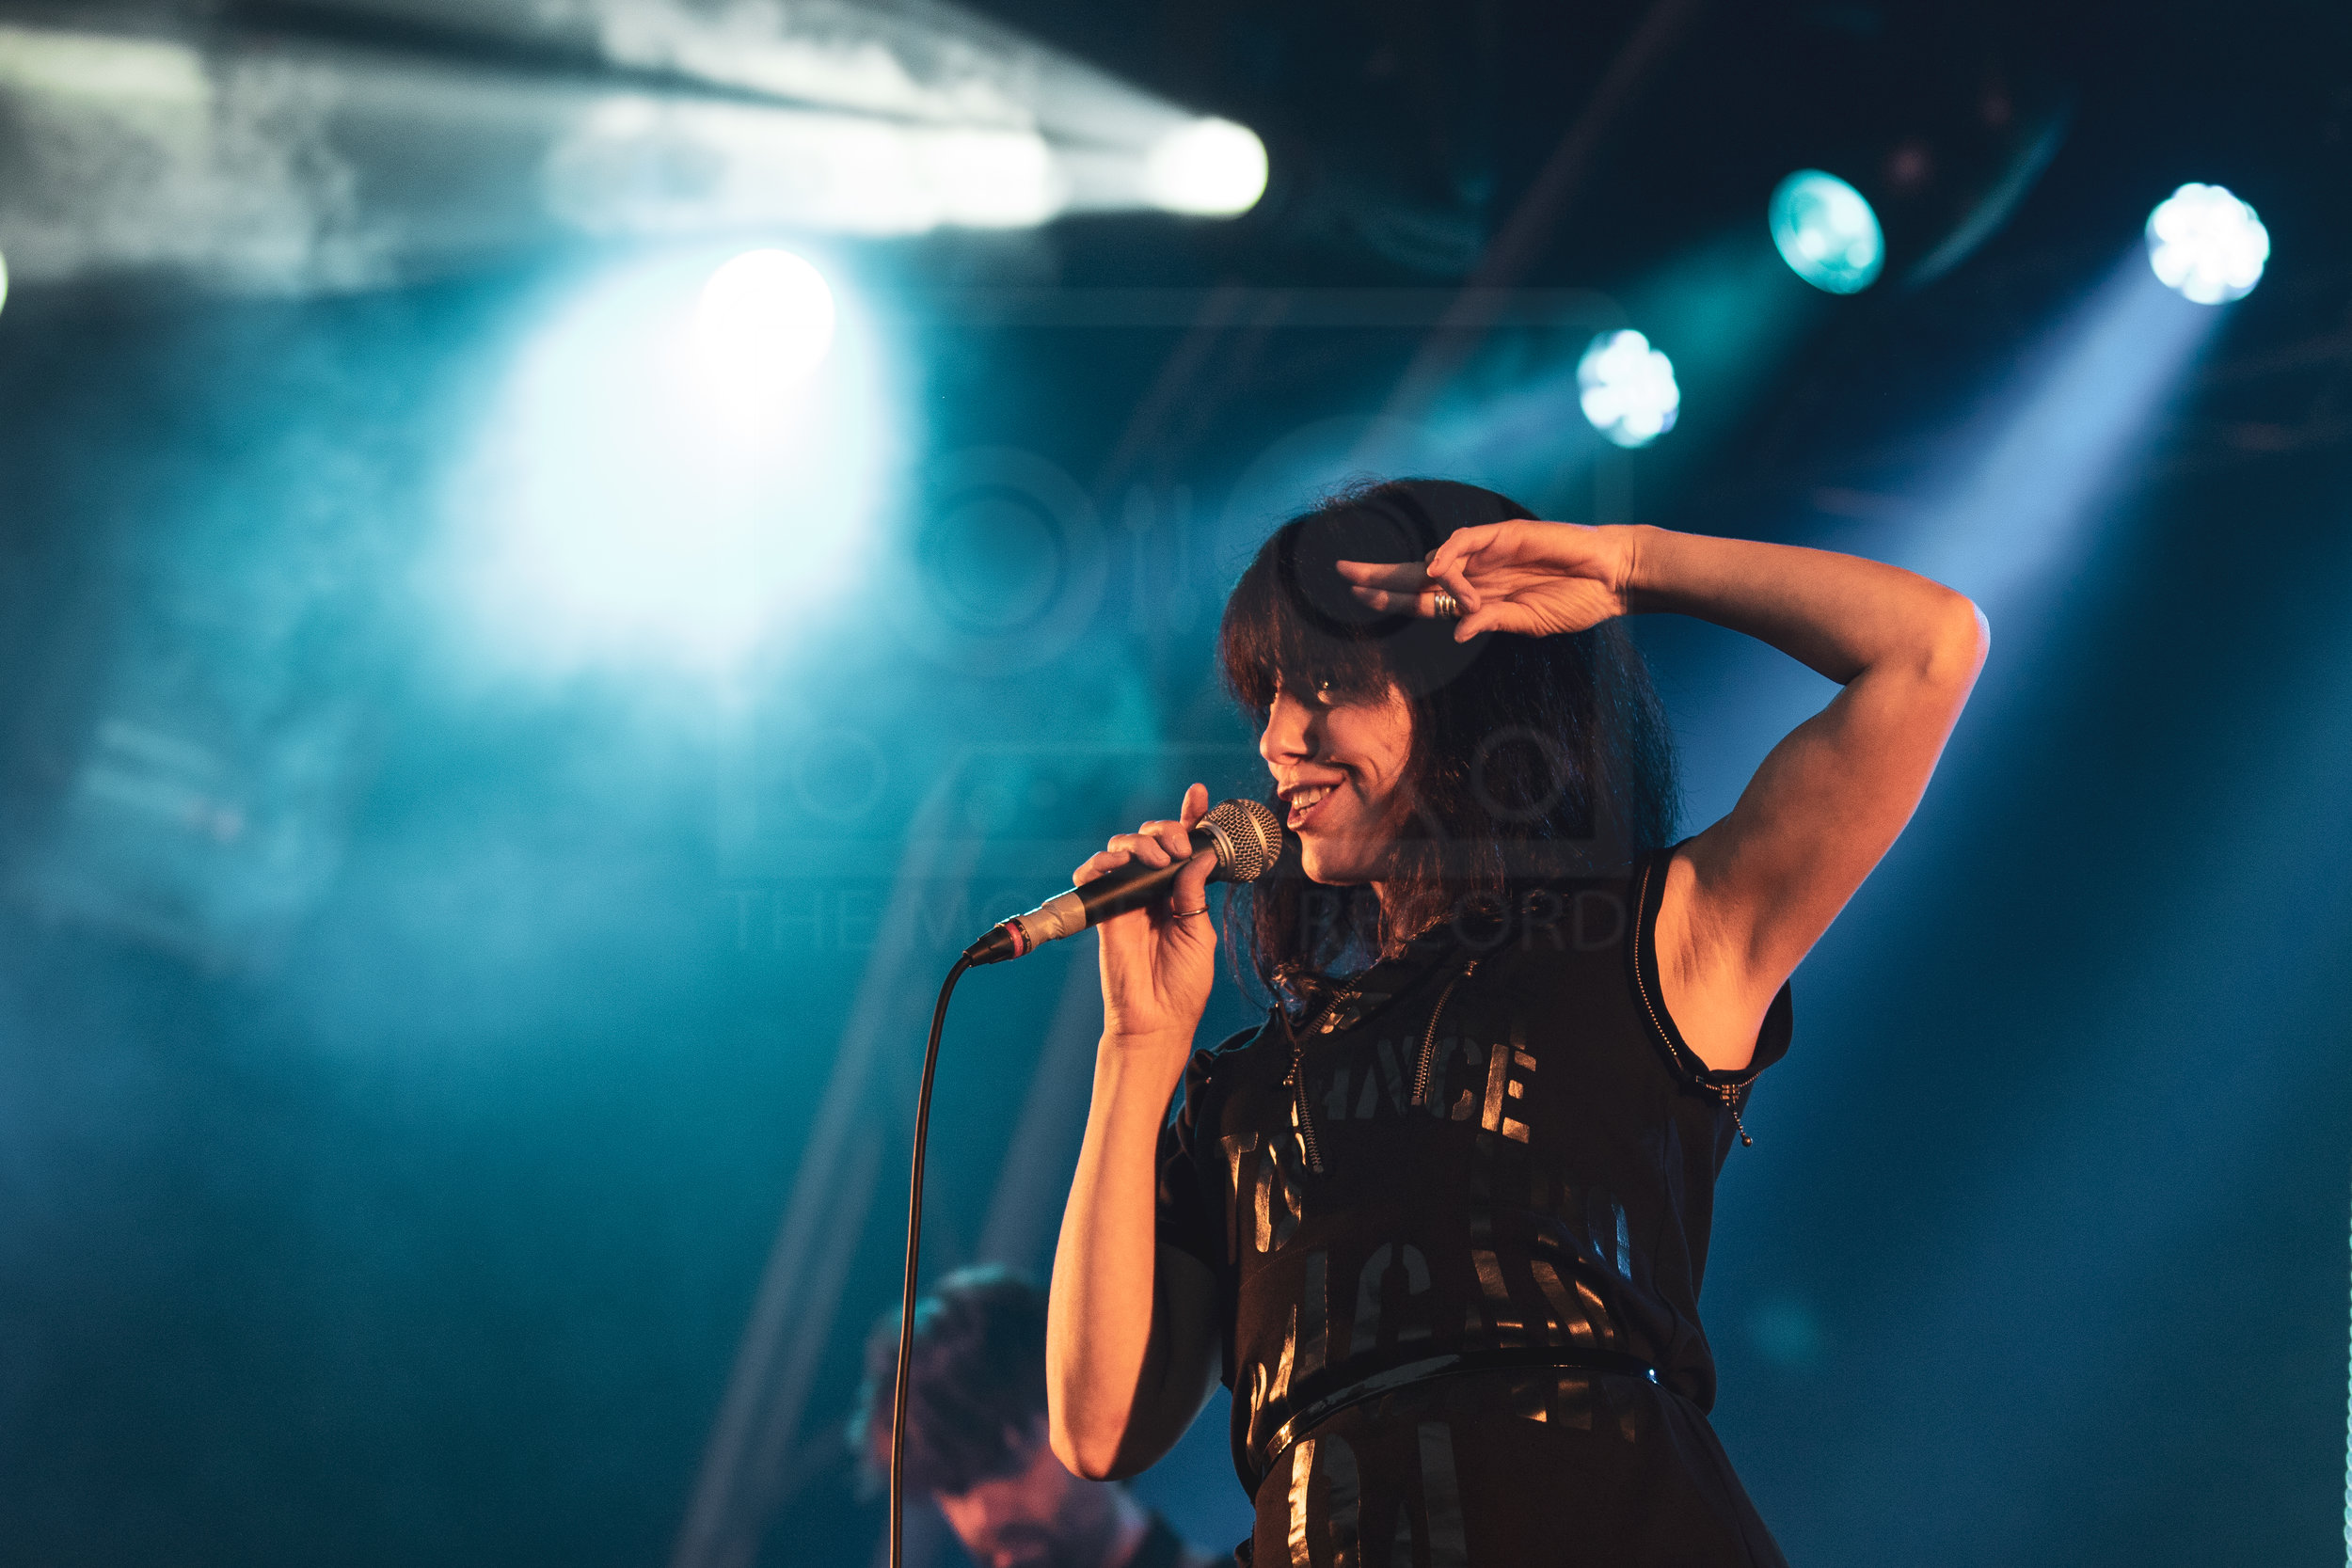 IMELDA MAY PERFORMING AT PARTY AT THE PALACE 2018 - 12.11.2018  PICTURE BY: KENDALL WILSON PHOTOGRAPHY